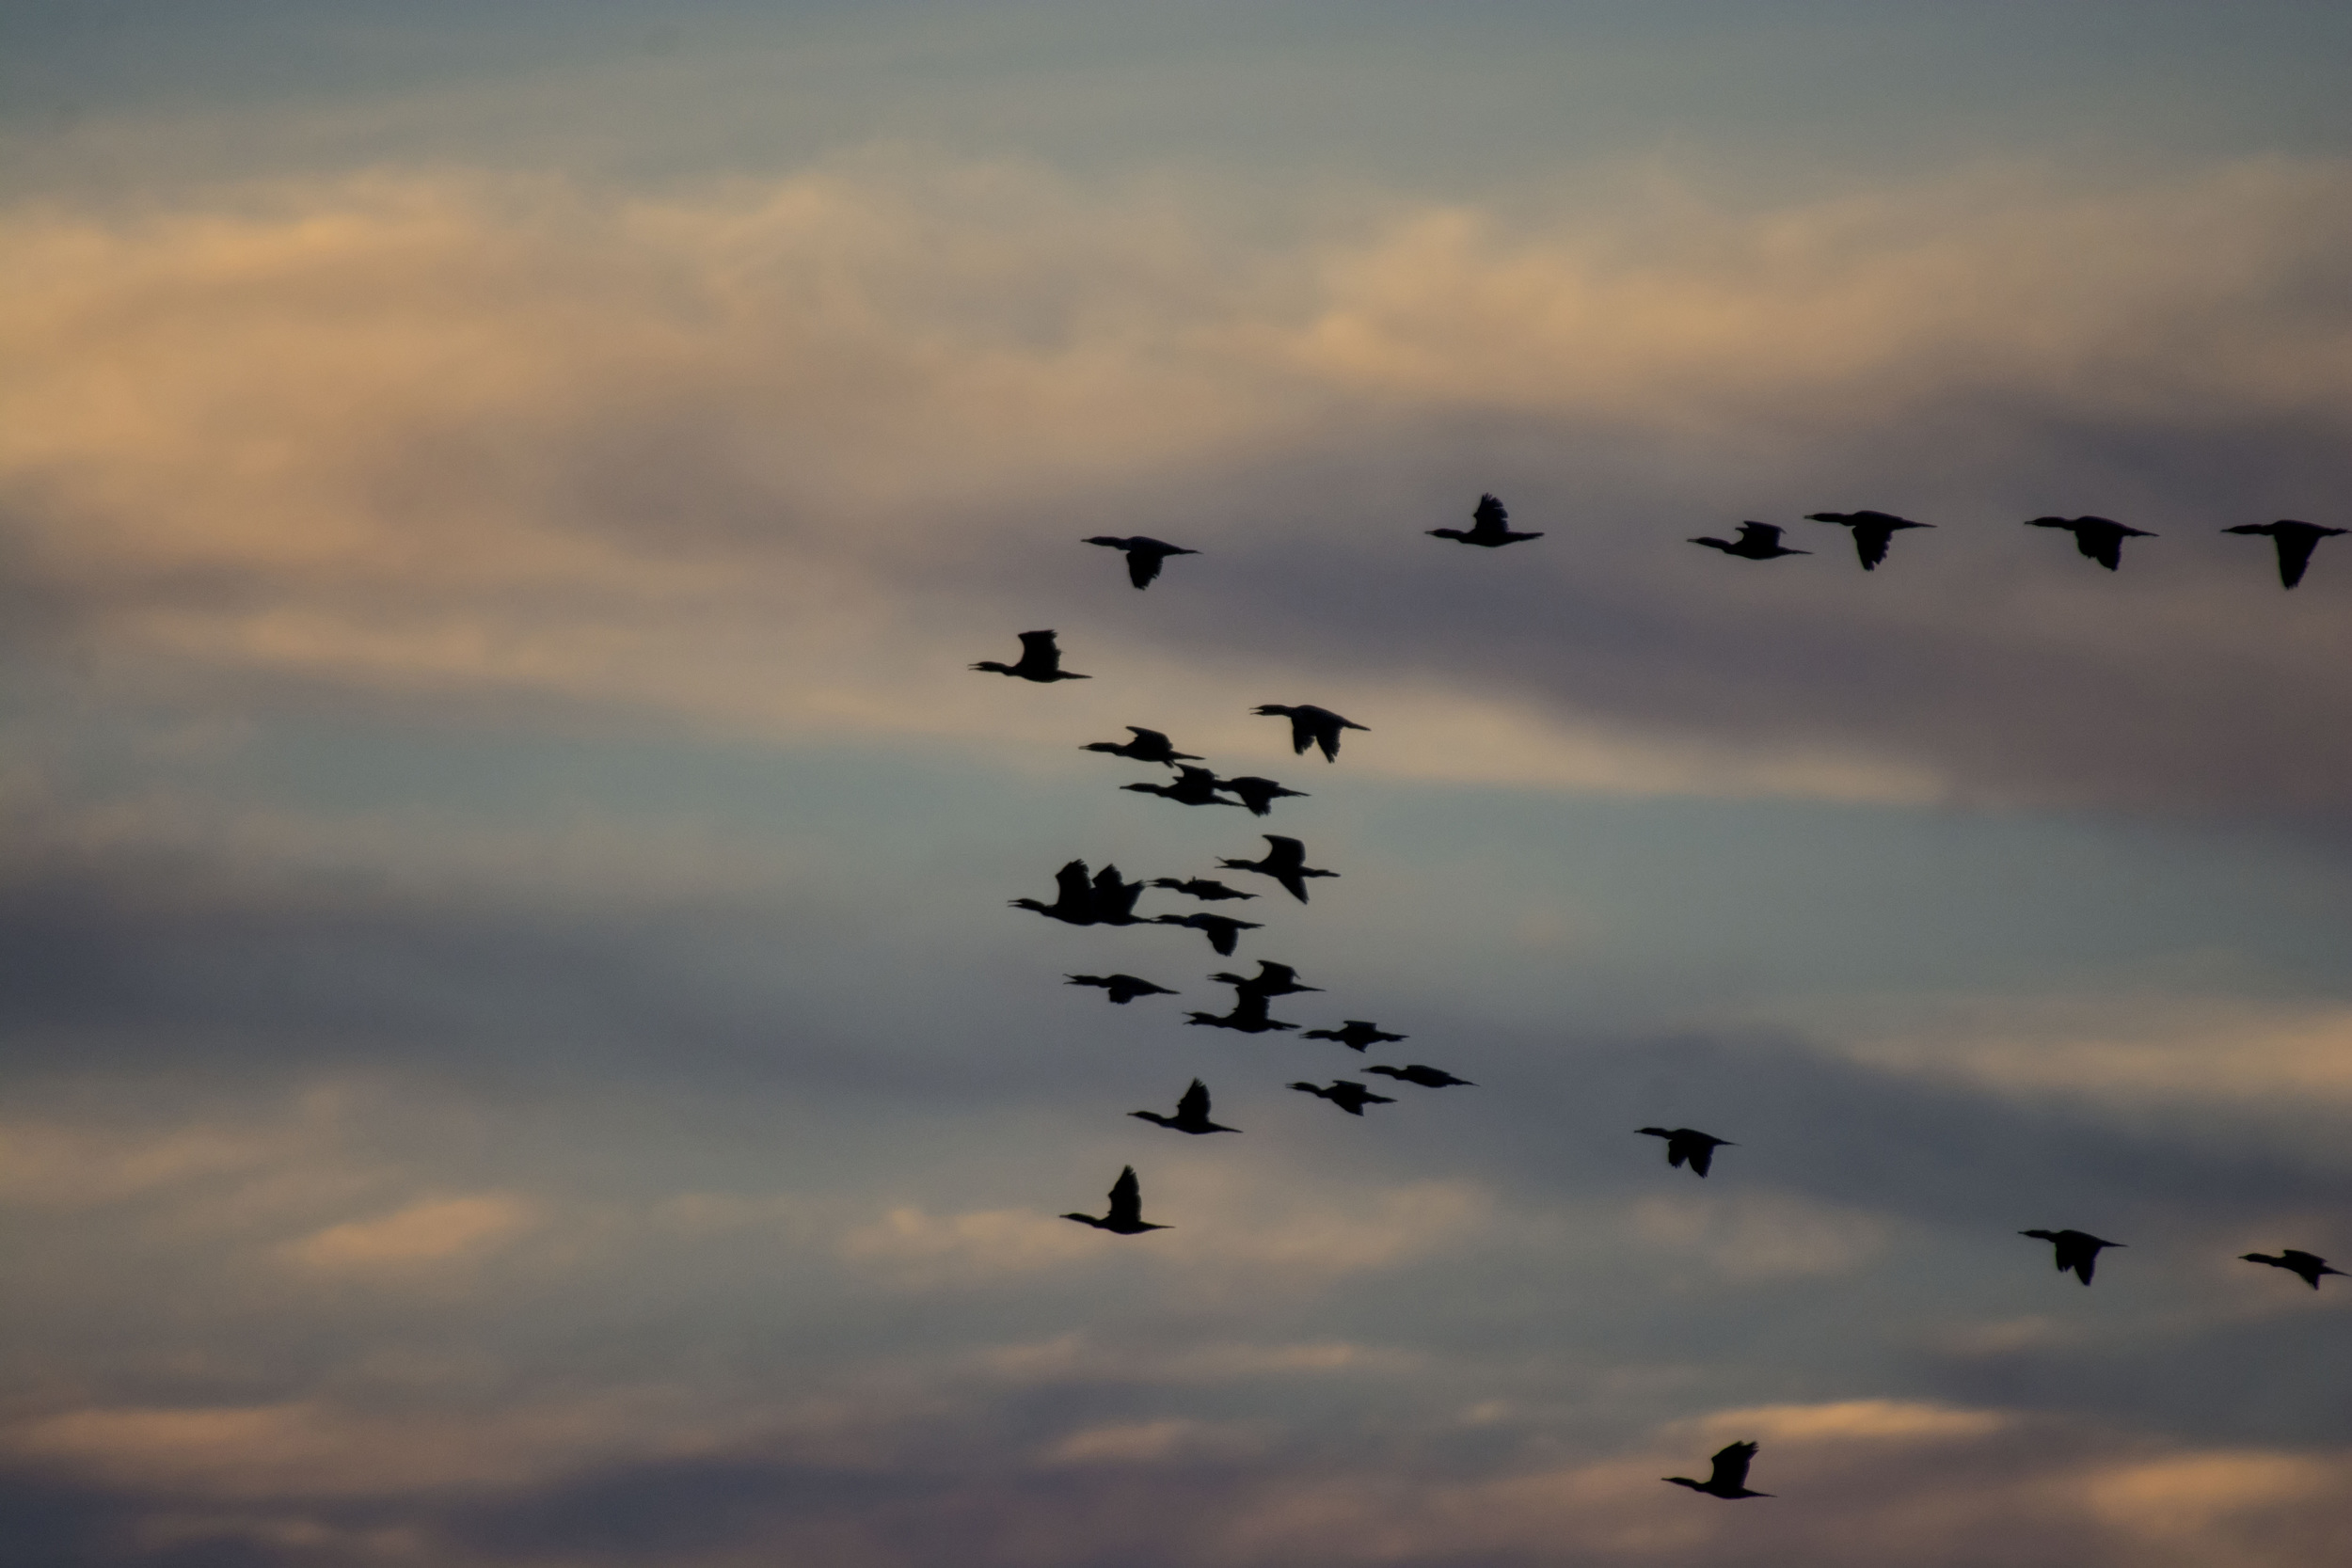 Geese at twilight